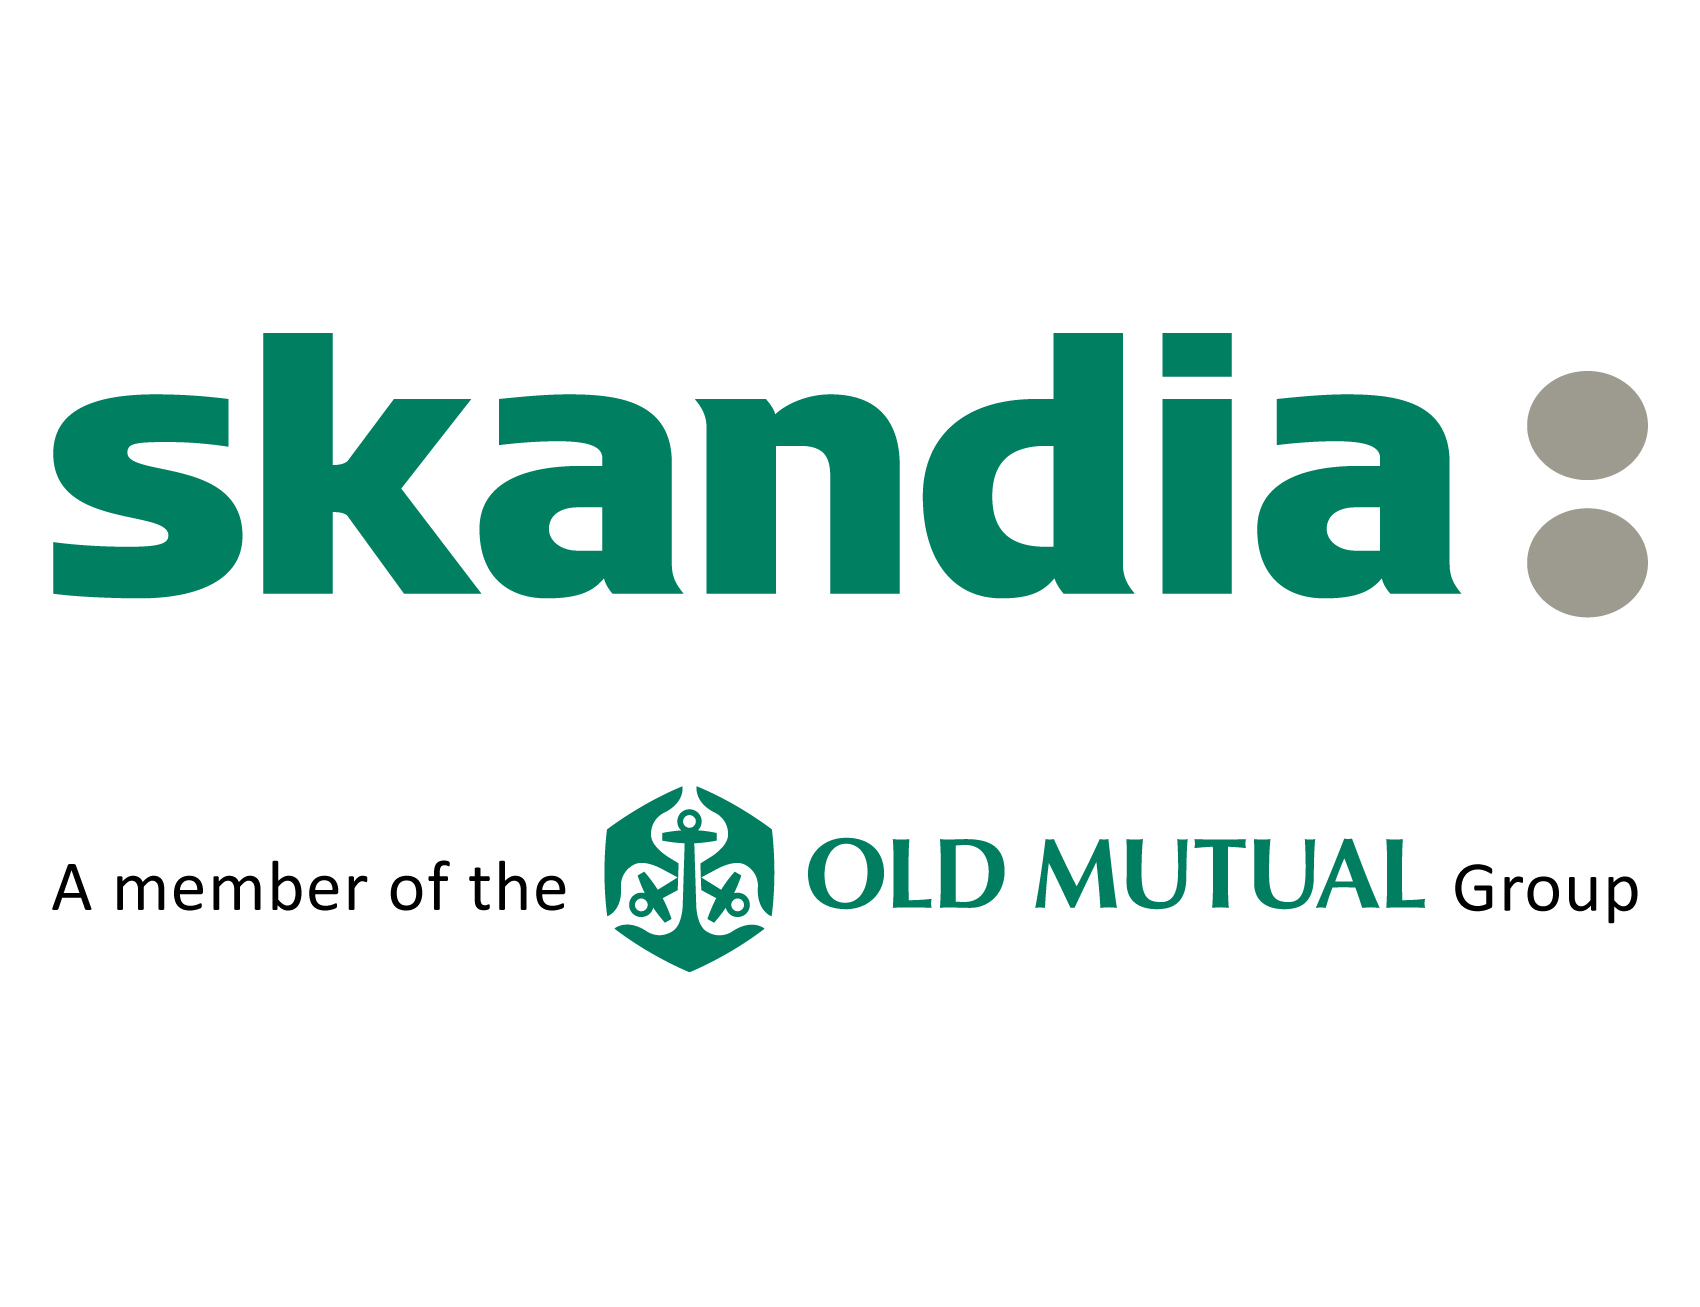 Skandia Old Mutual HP